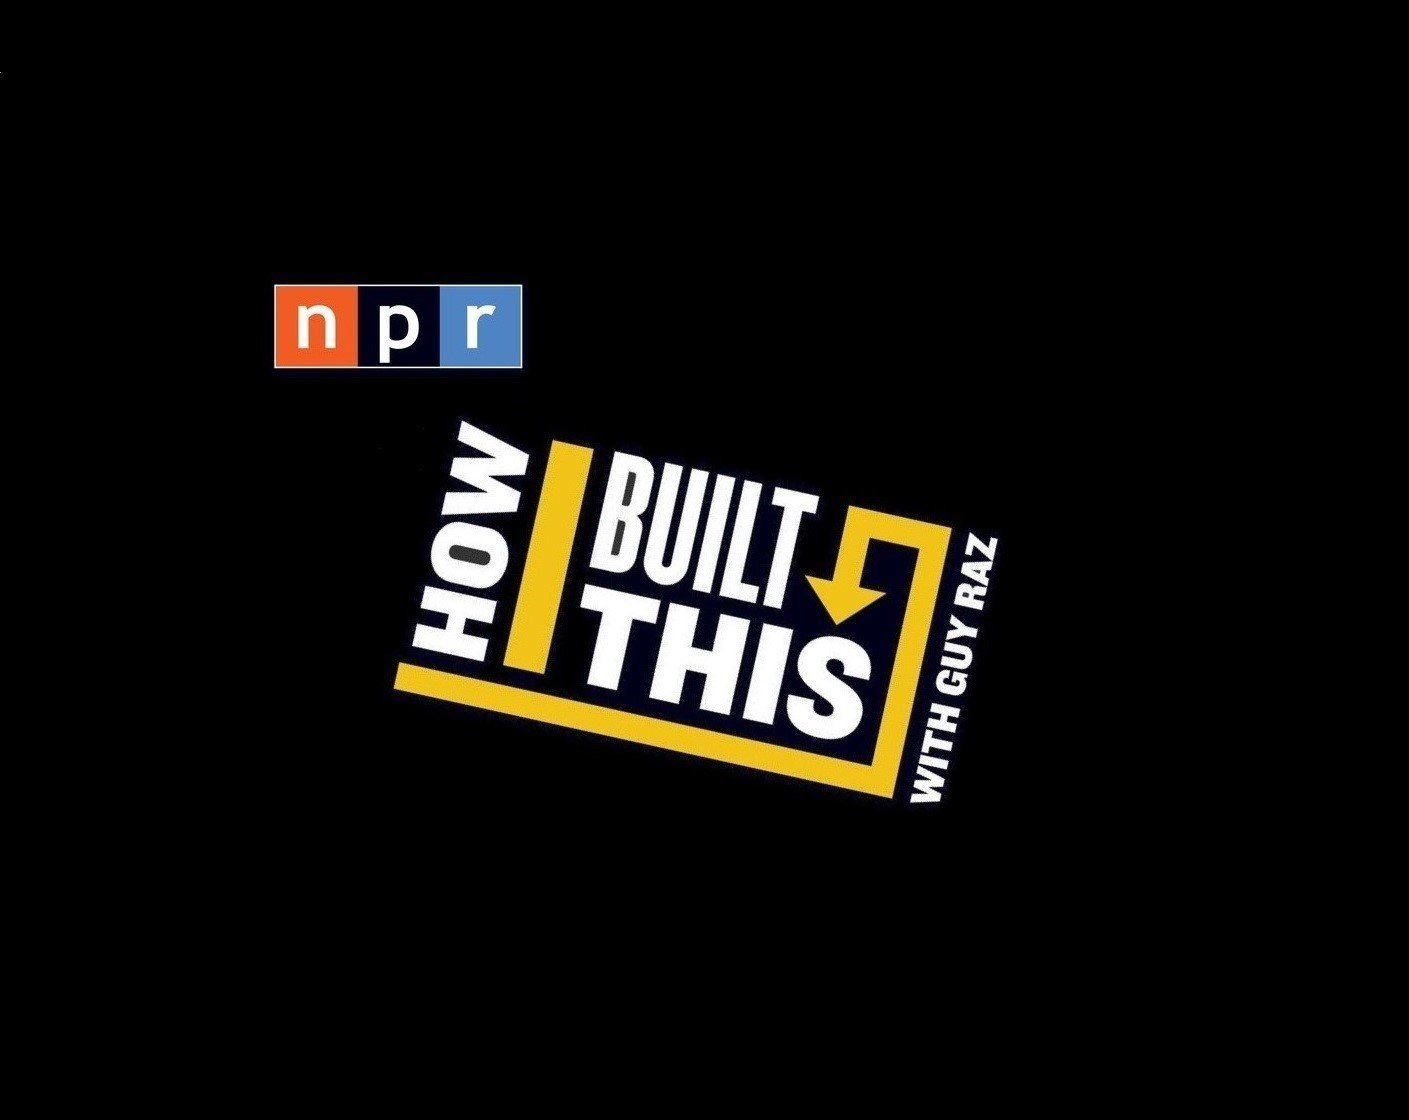 NPR's How I Built This - LinkedIn: Reid Hoffman | EVAN360